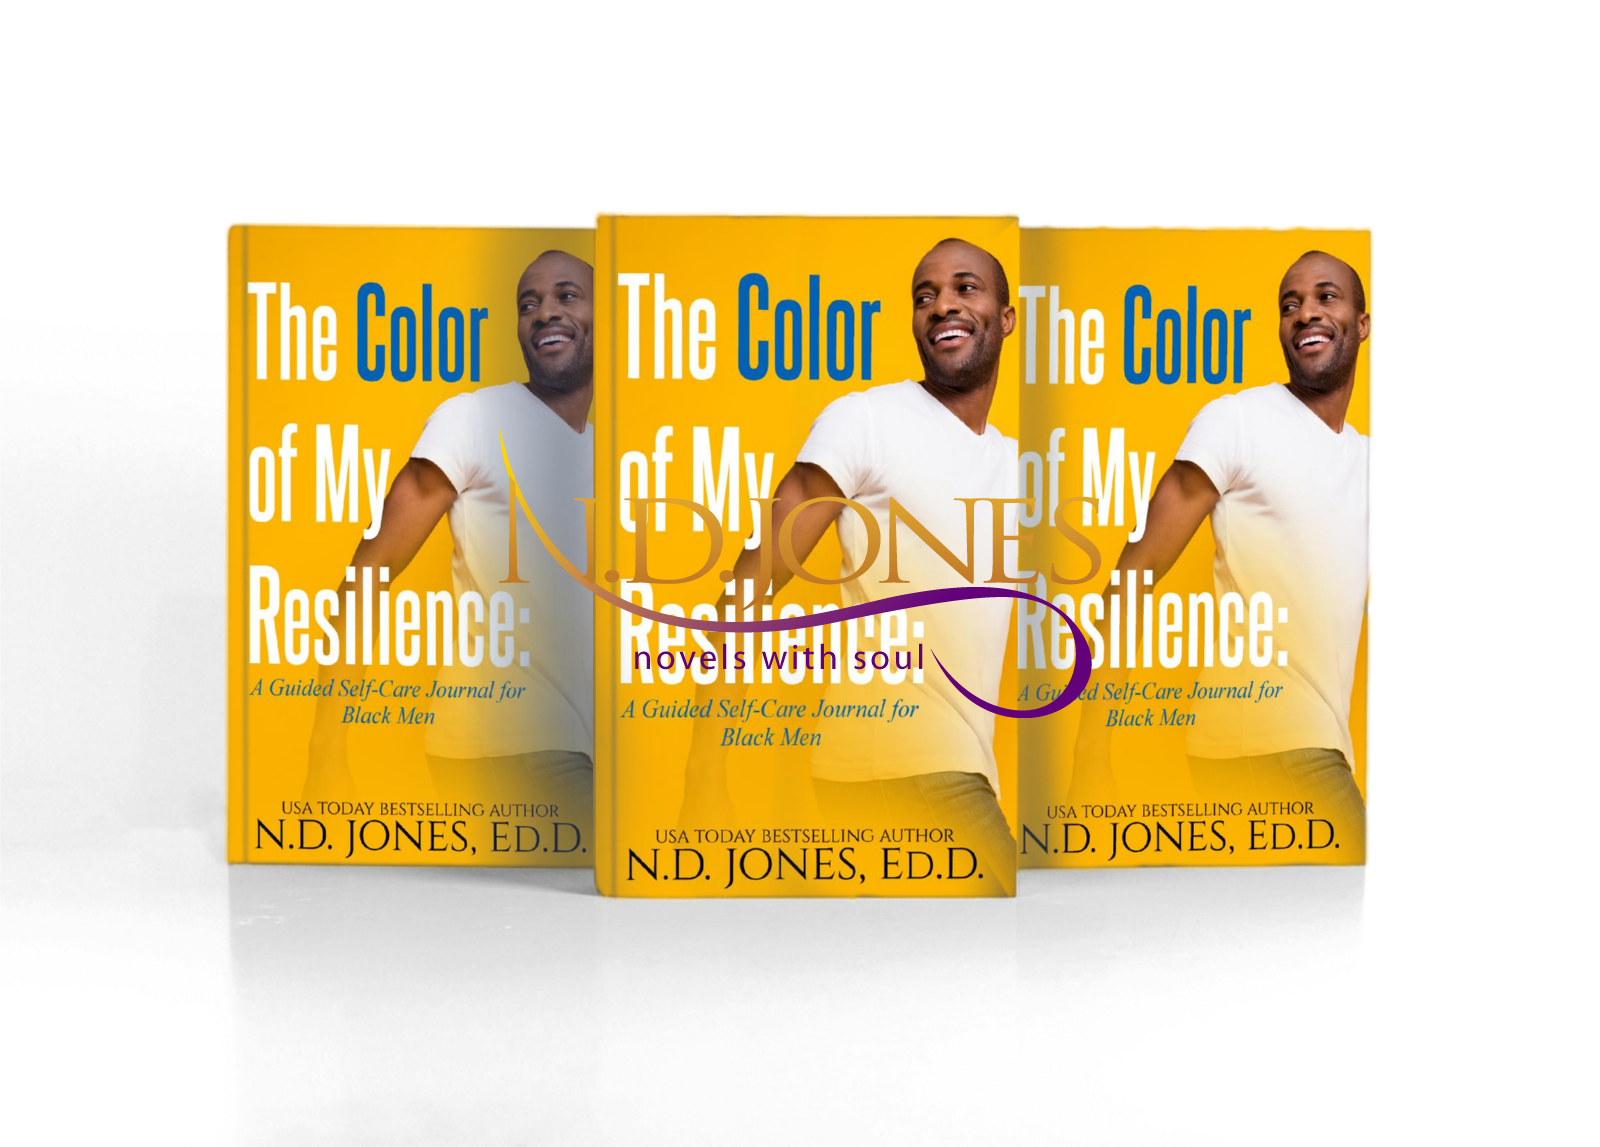 The Color of My Resilience: A Guided Self care Journal for Black Men by ND Jones